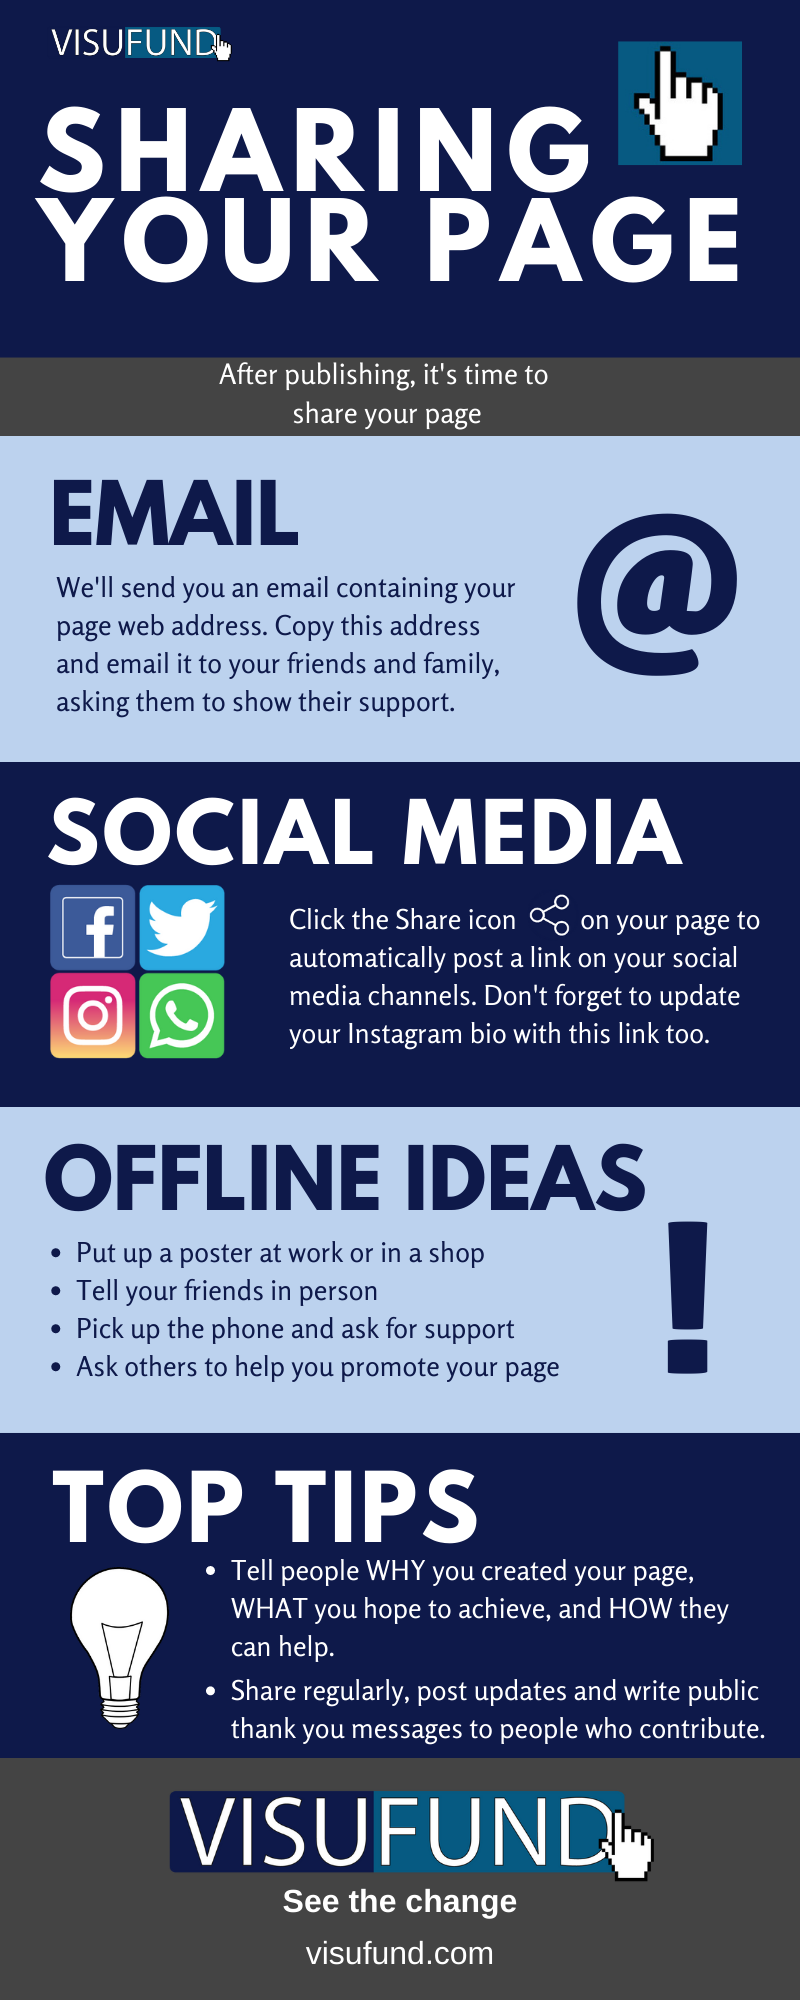 infographic on sharing your page - text from image shared below